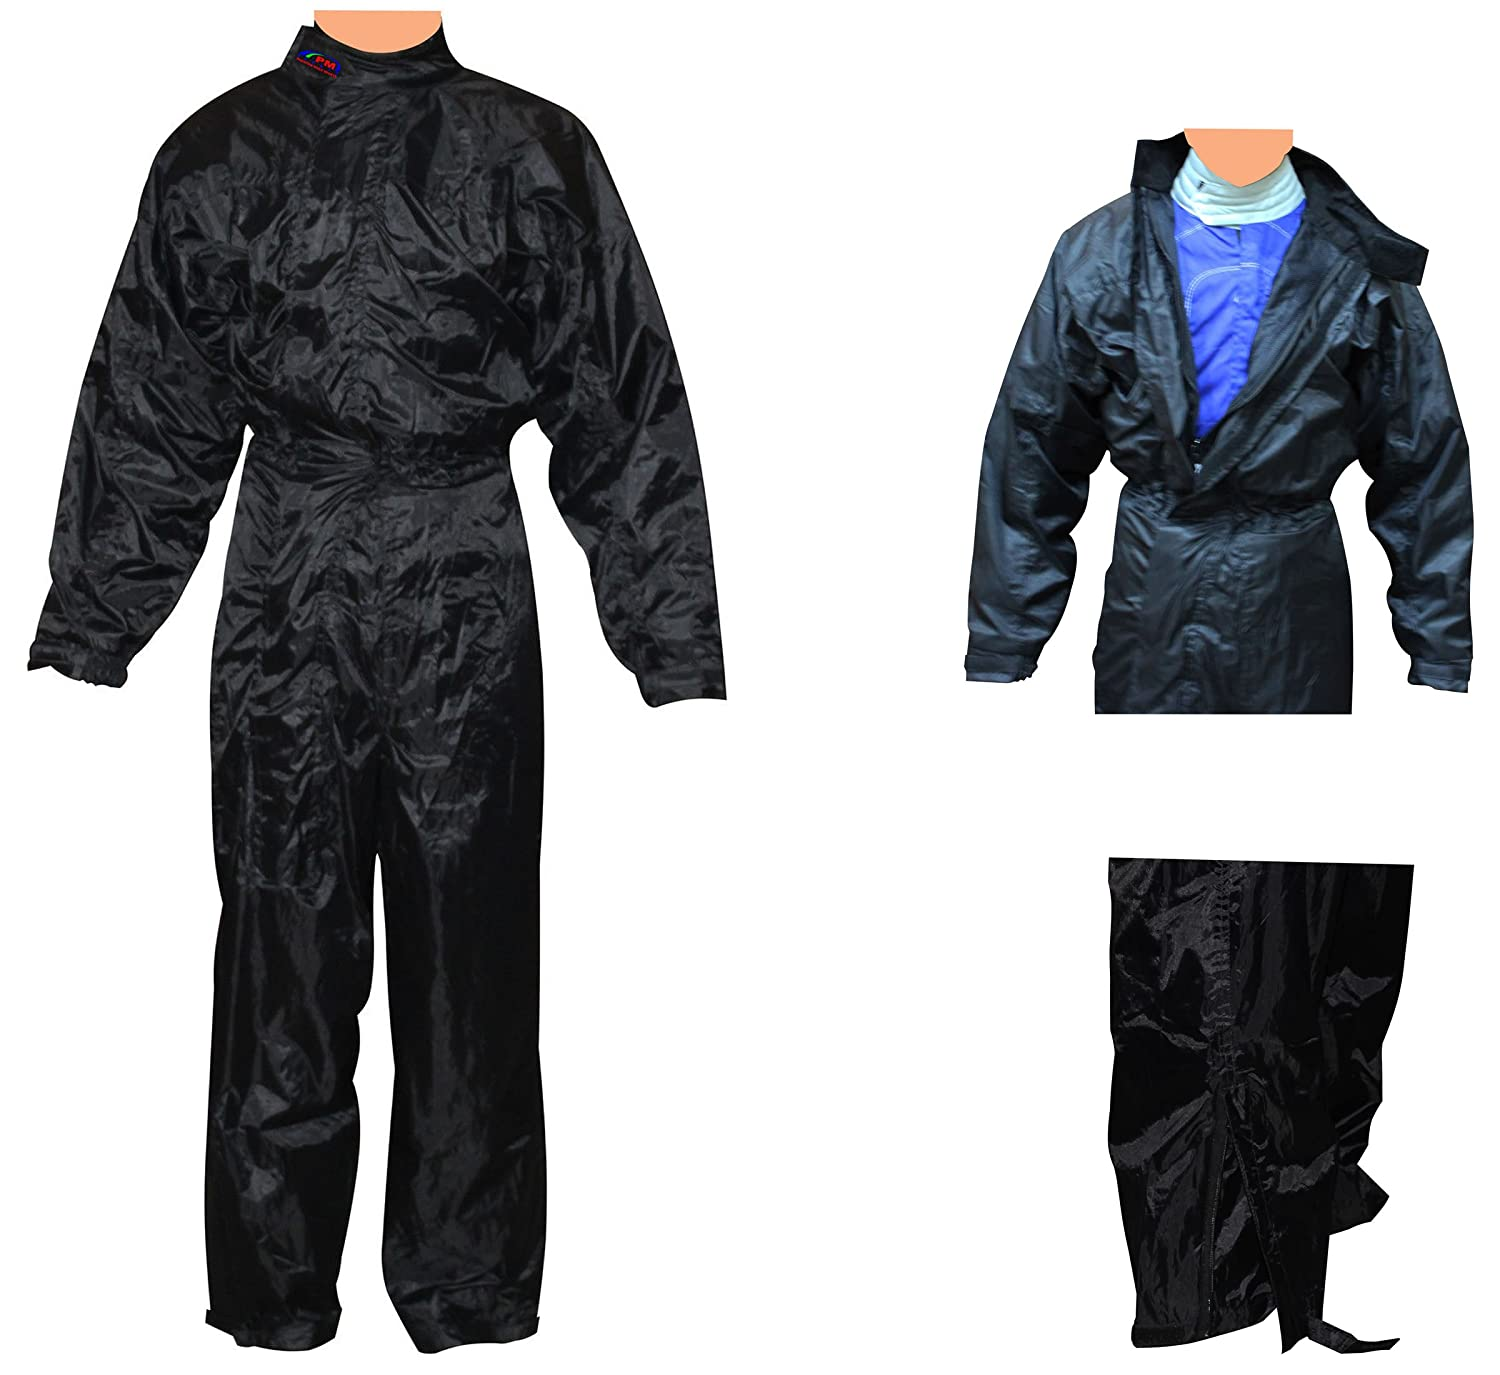 Rain Suit, Wet weather One Piece Suit Overall For Karting, Race, Rally, Autograss in BLACK (L) PM Sports